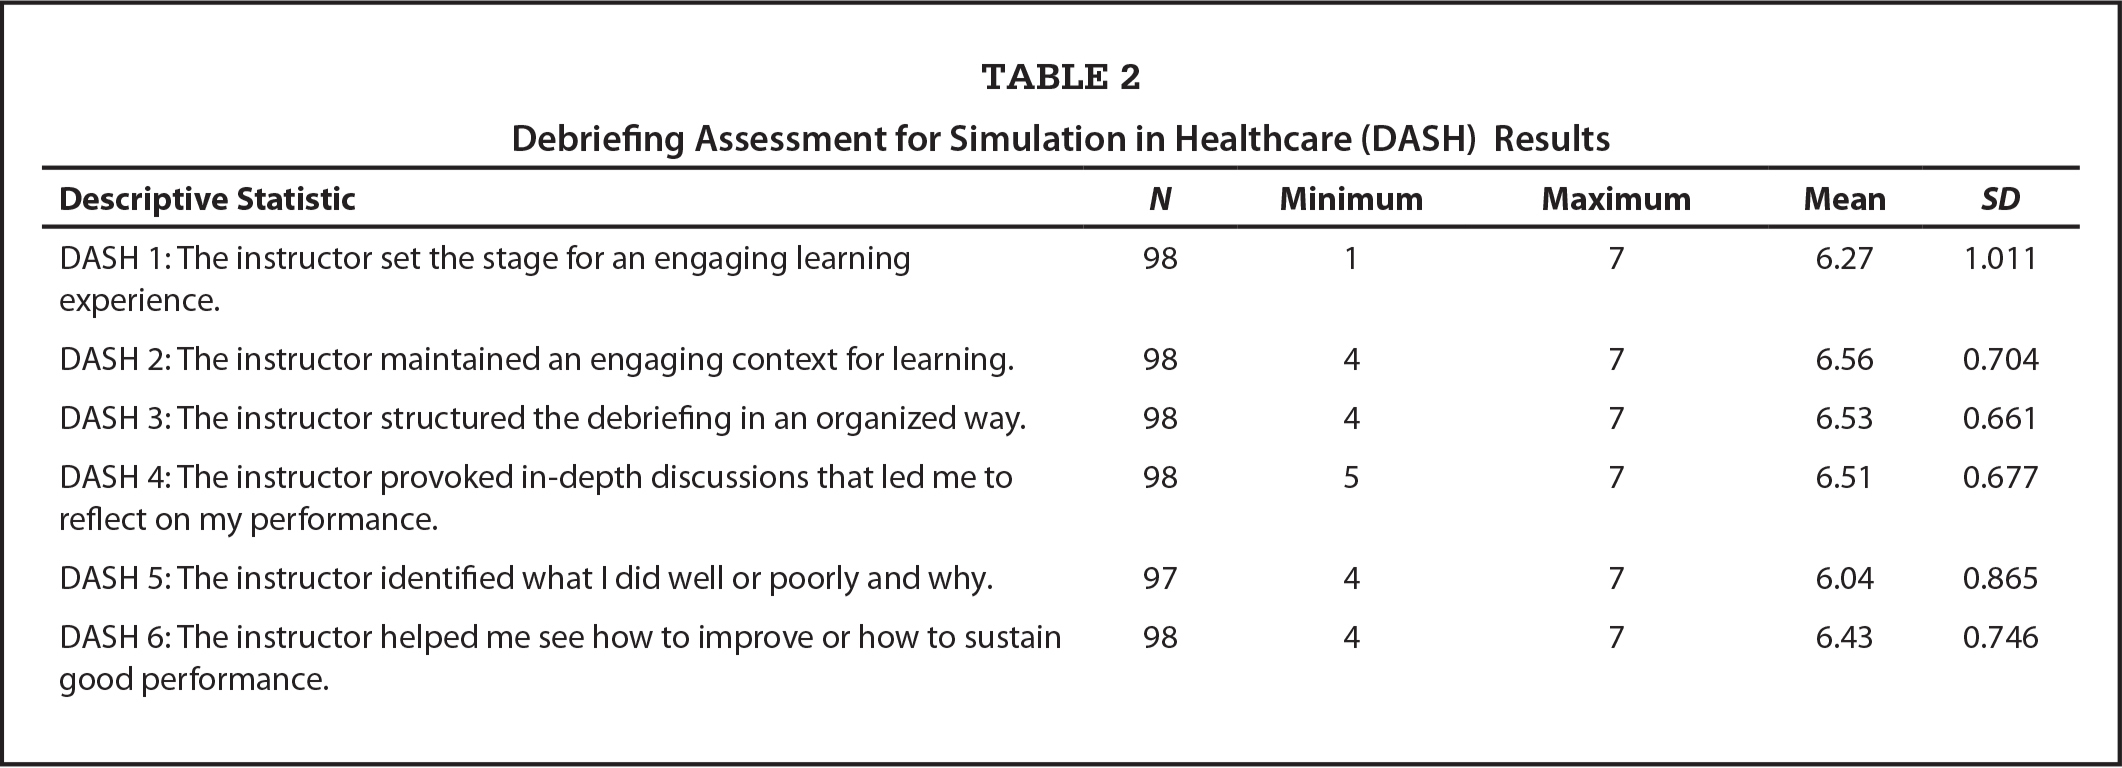 Debriefing Assessment for Simulation in Healthcare (DASH) Results